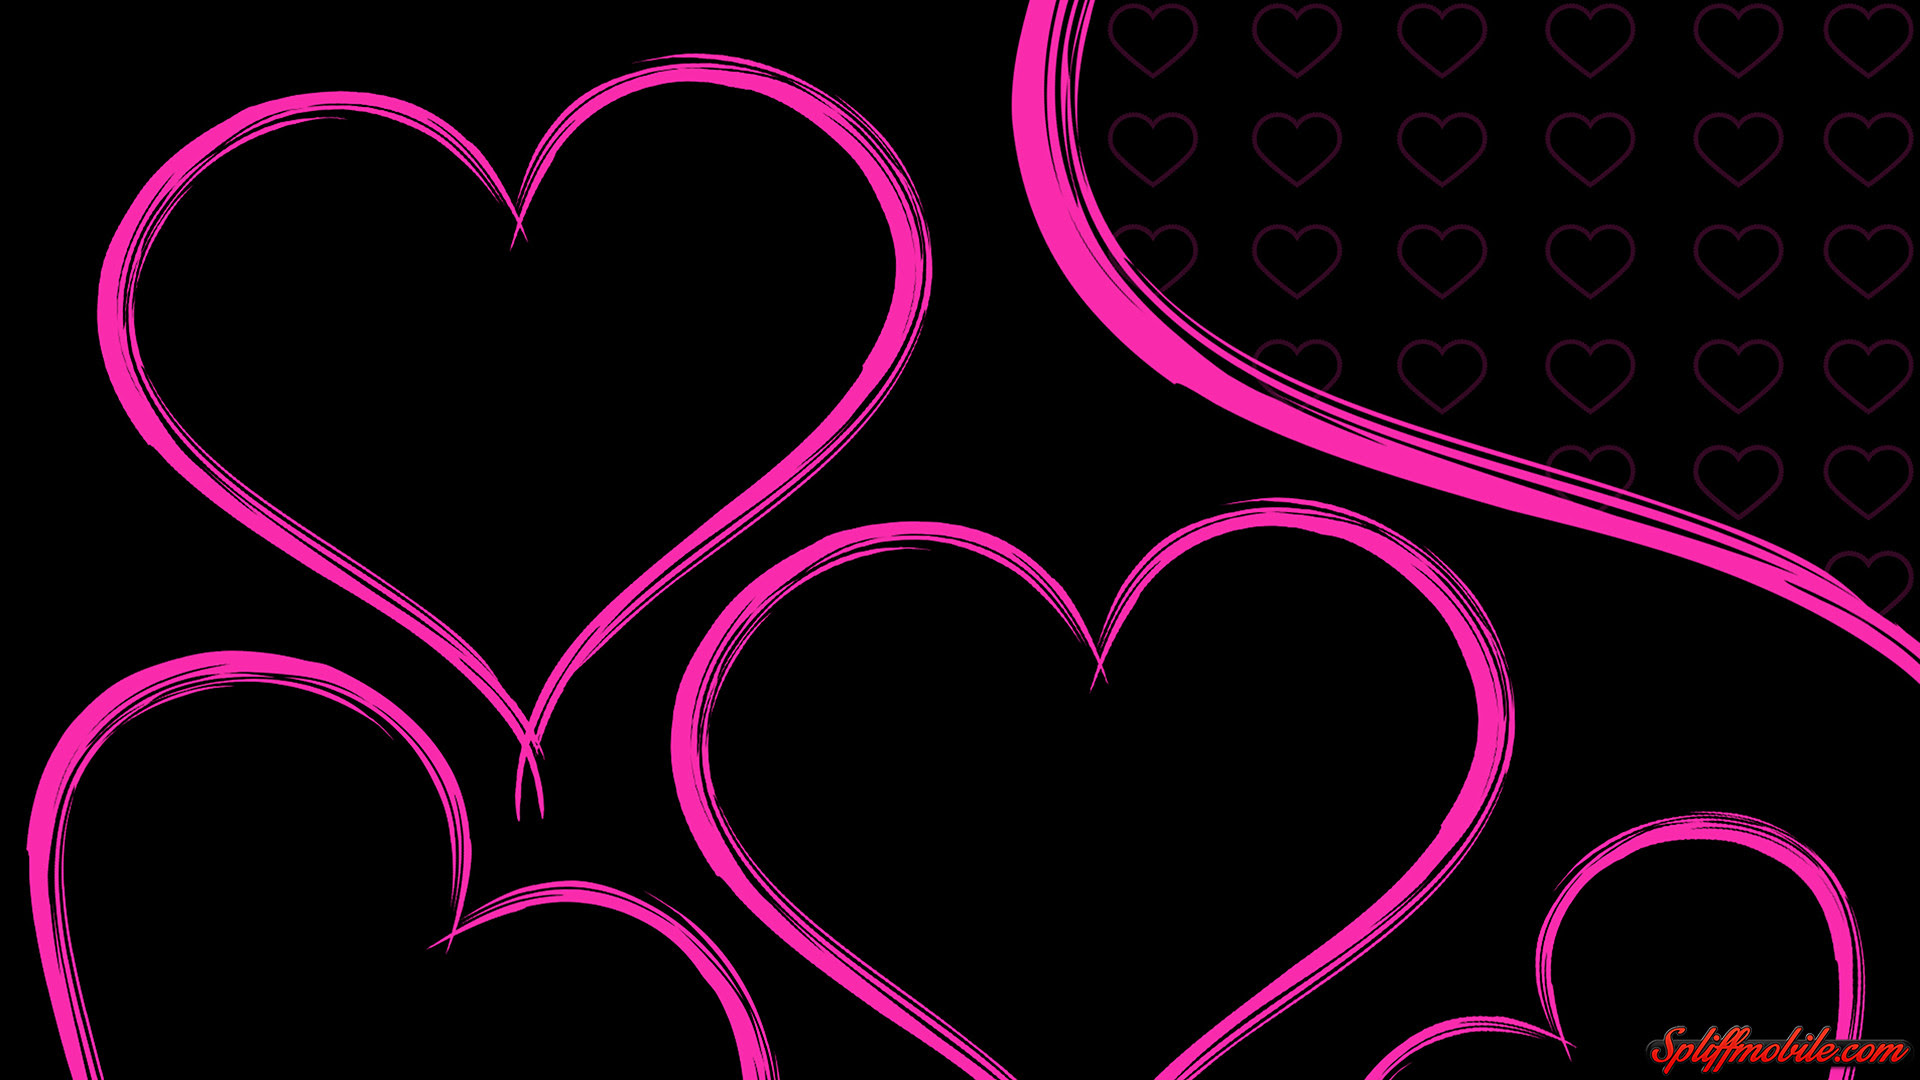 Cool Heart Backgrounds (57+ images)